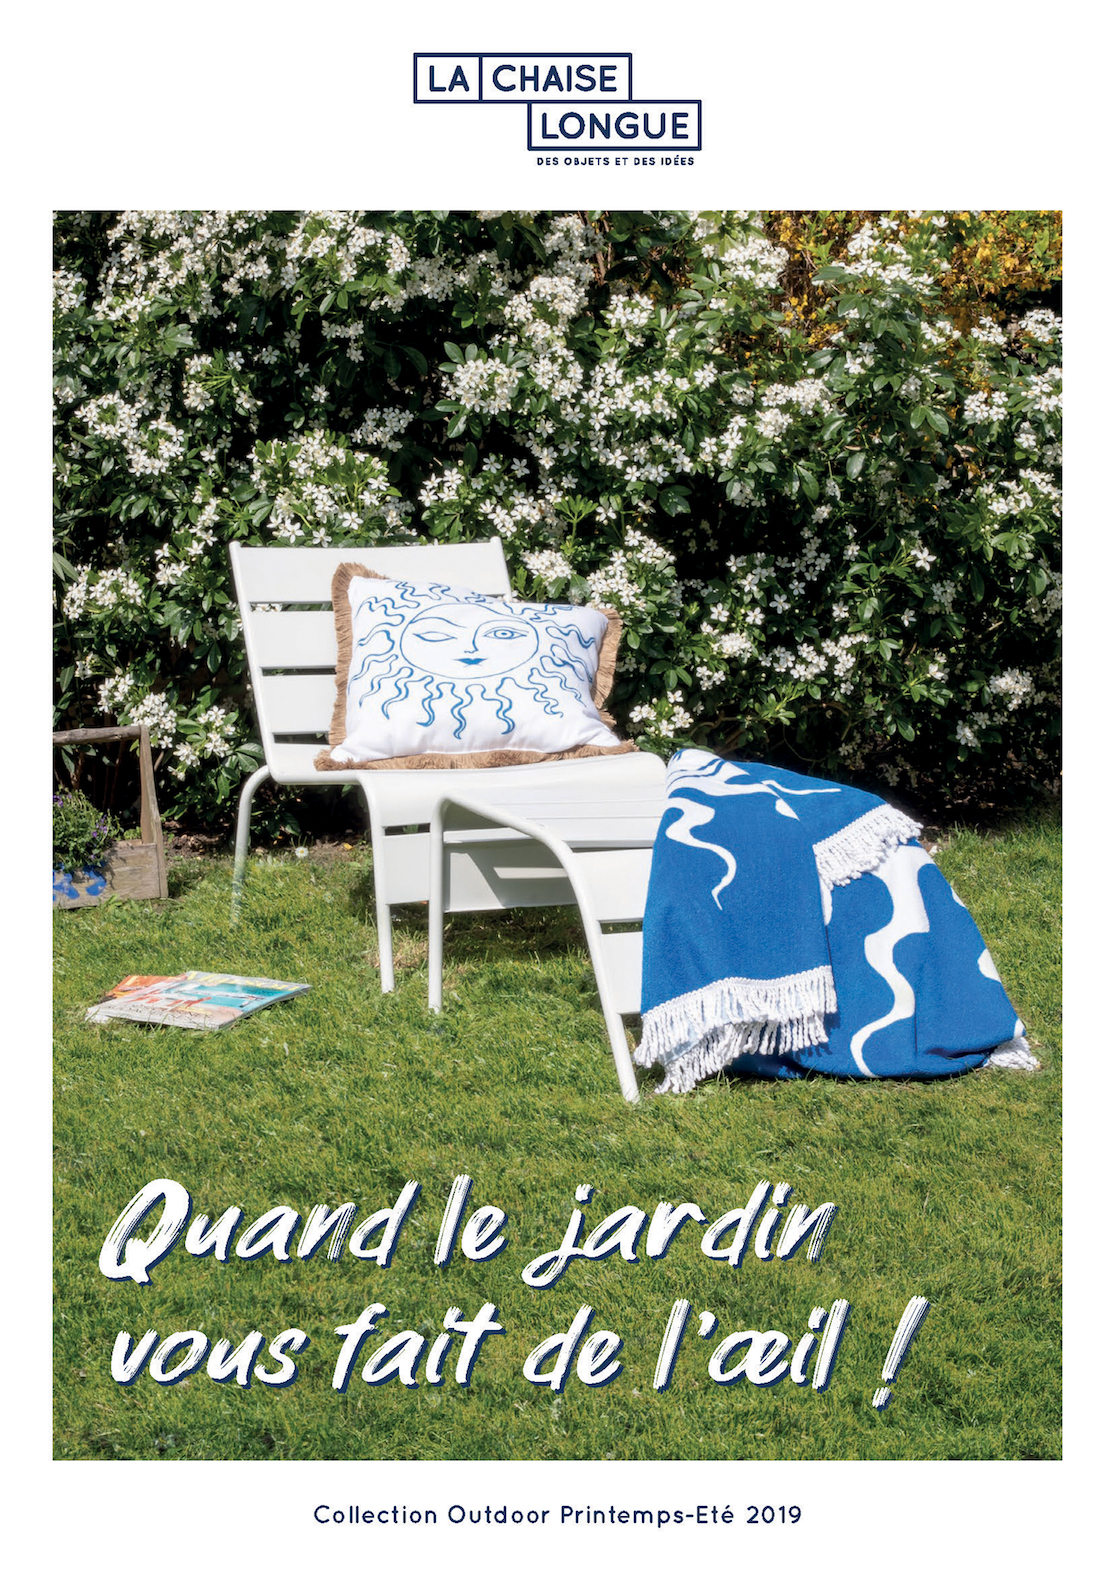 Chaise Strasbourg Longue Chaise Longue Magasin WHEYDI29